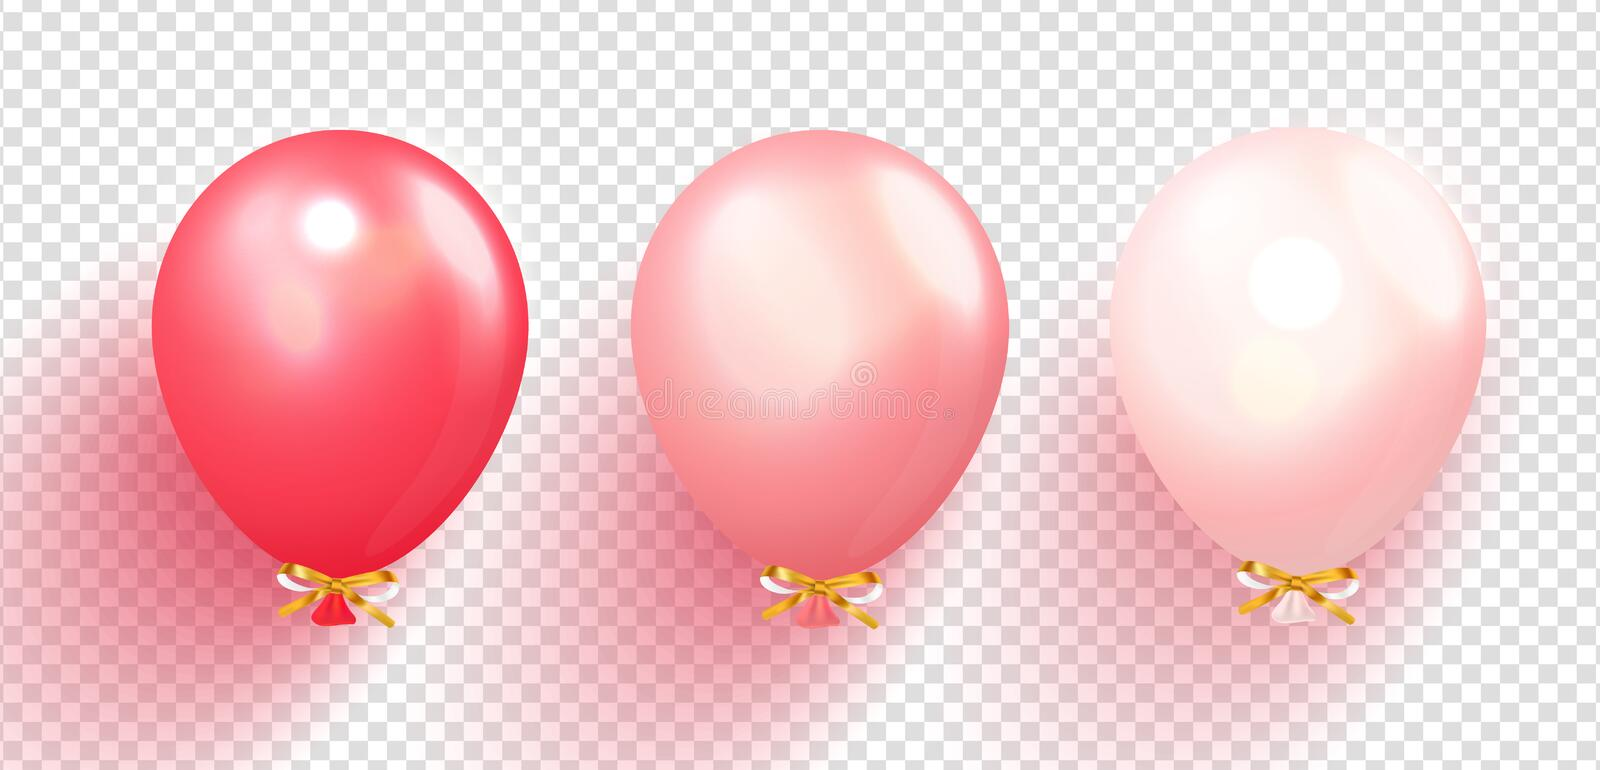 Realistic glossy balloons vector illustration on transparent background. Balloons for Birthday, festive occasions stock illustration